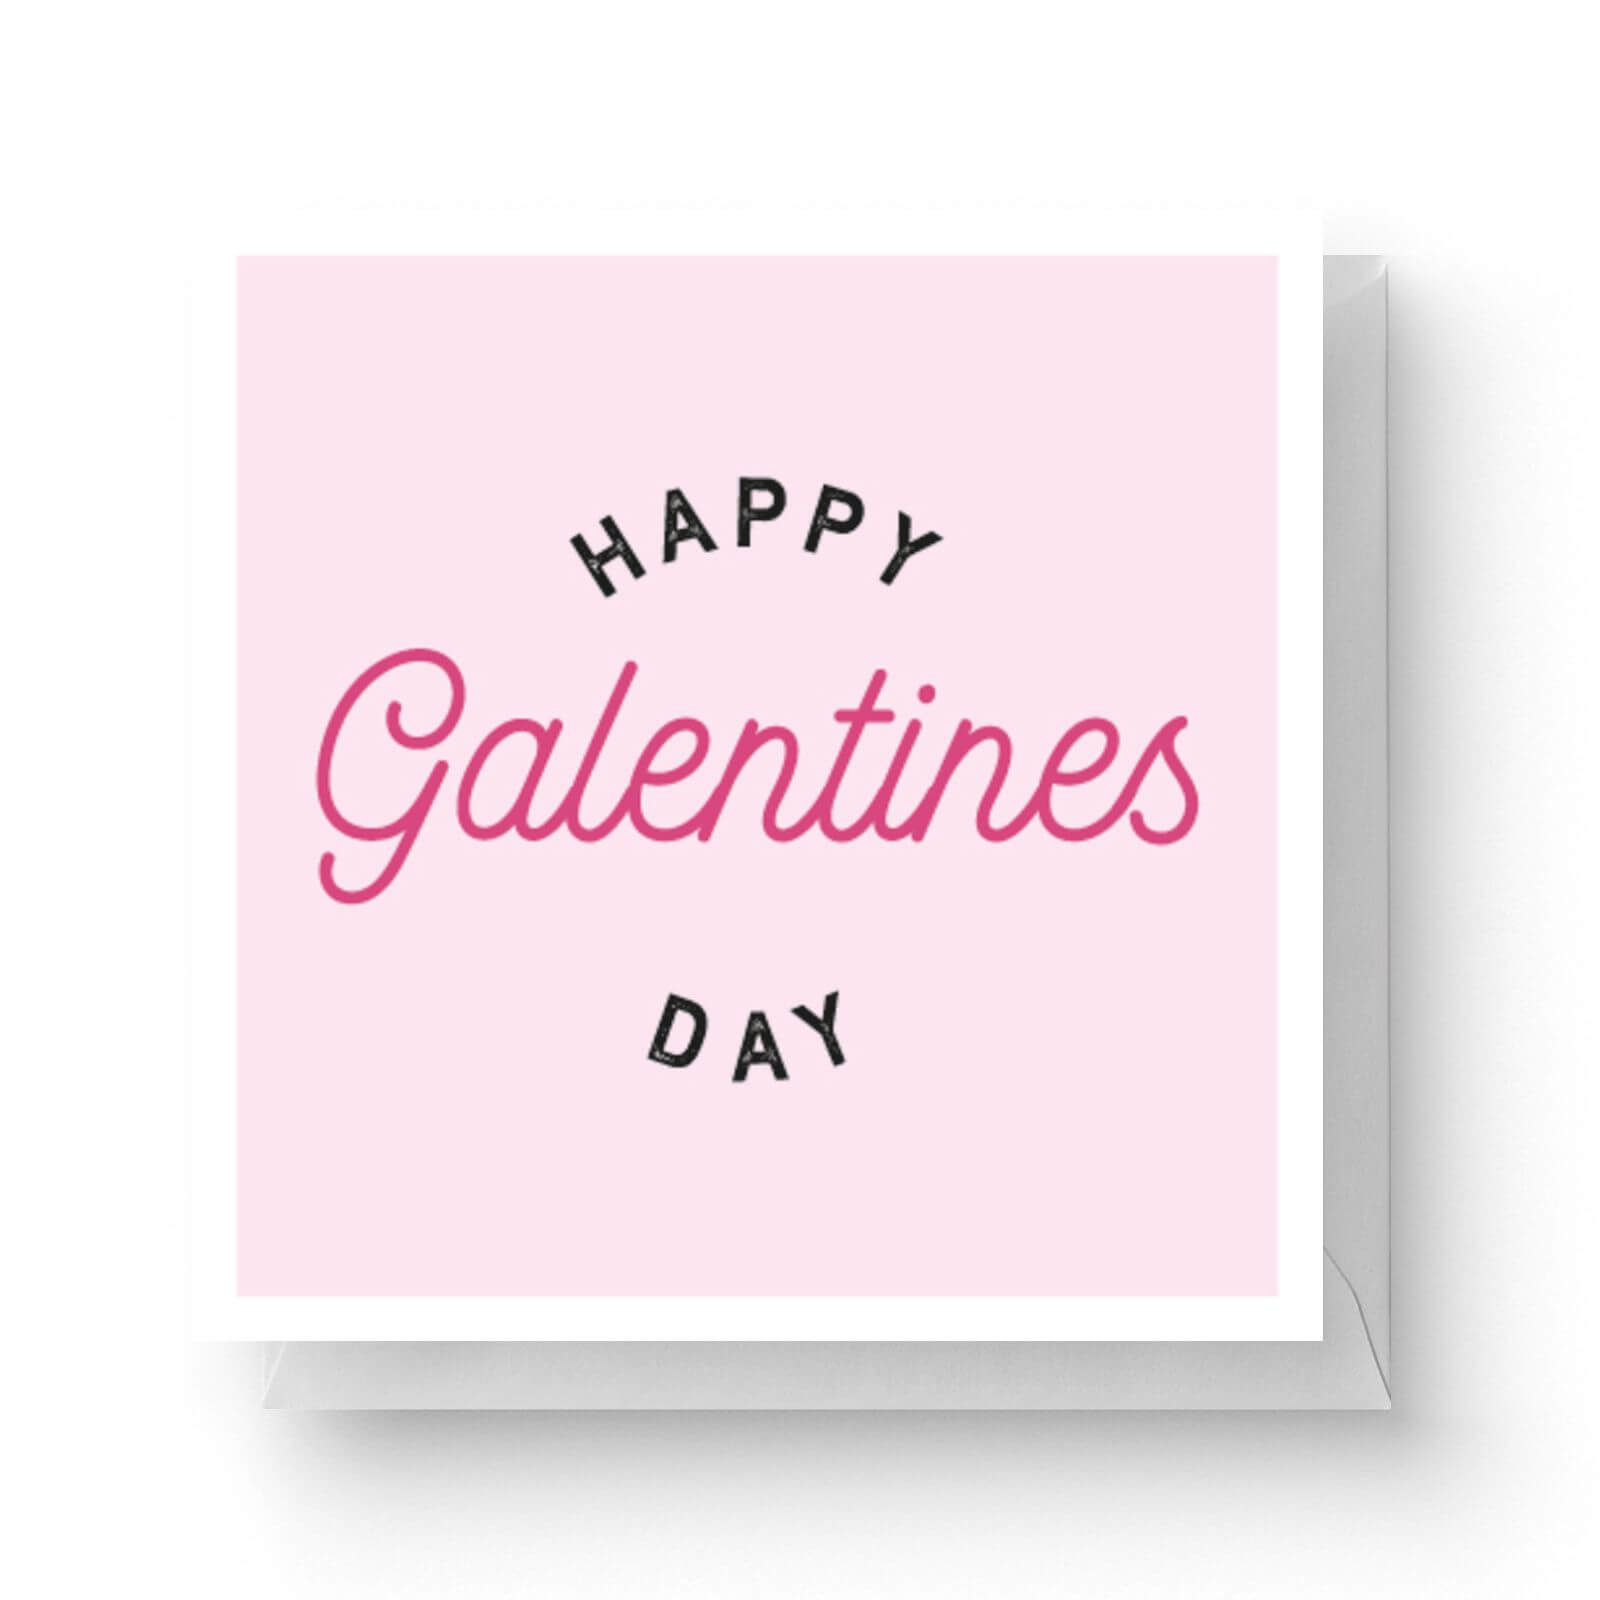 Image of Happy Galentine's Day Square Greetings Card (14.8cm x 14.8cm)